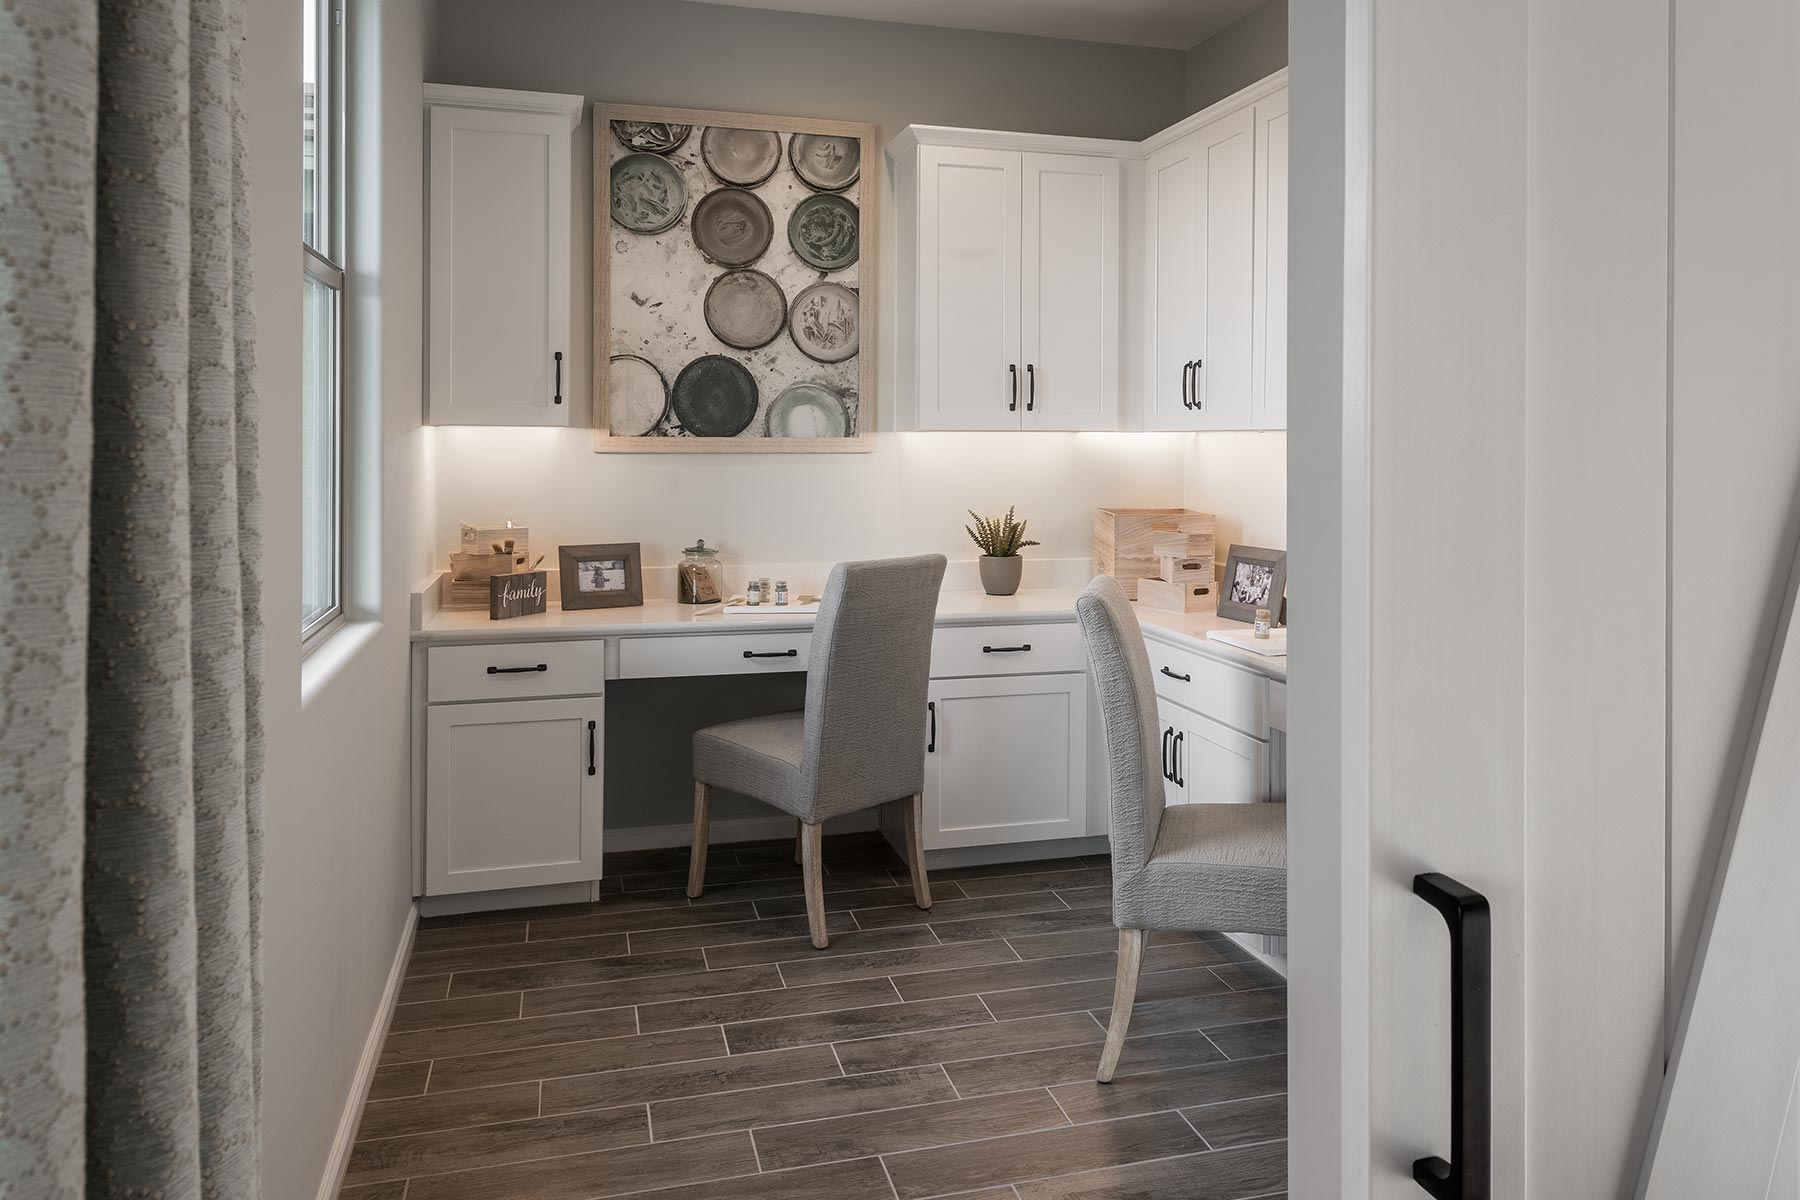 Mesquite Plan Study Room at Saguaro Trails in Tucson Arizona by Mattamy Homes